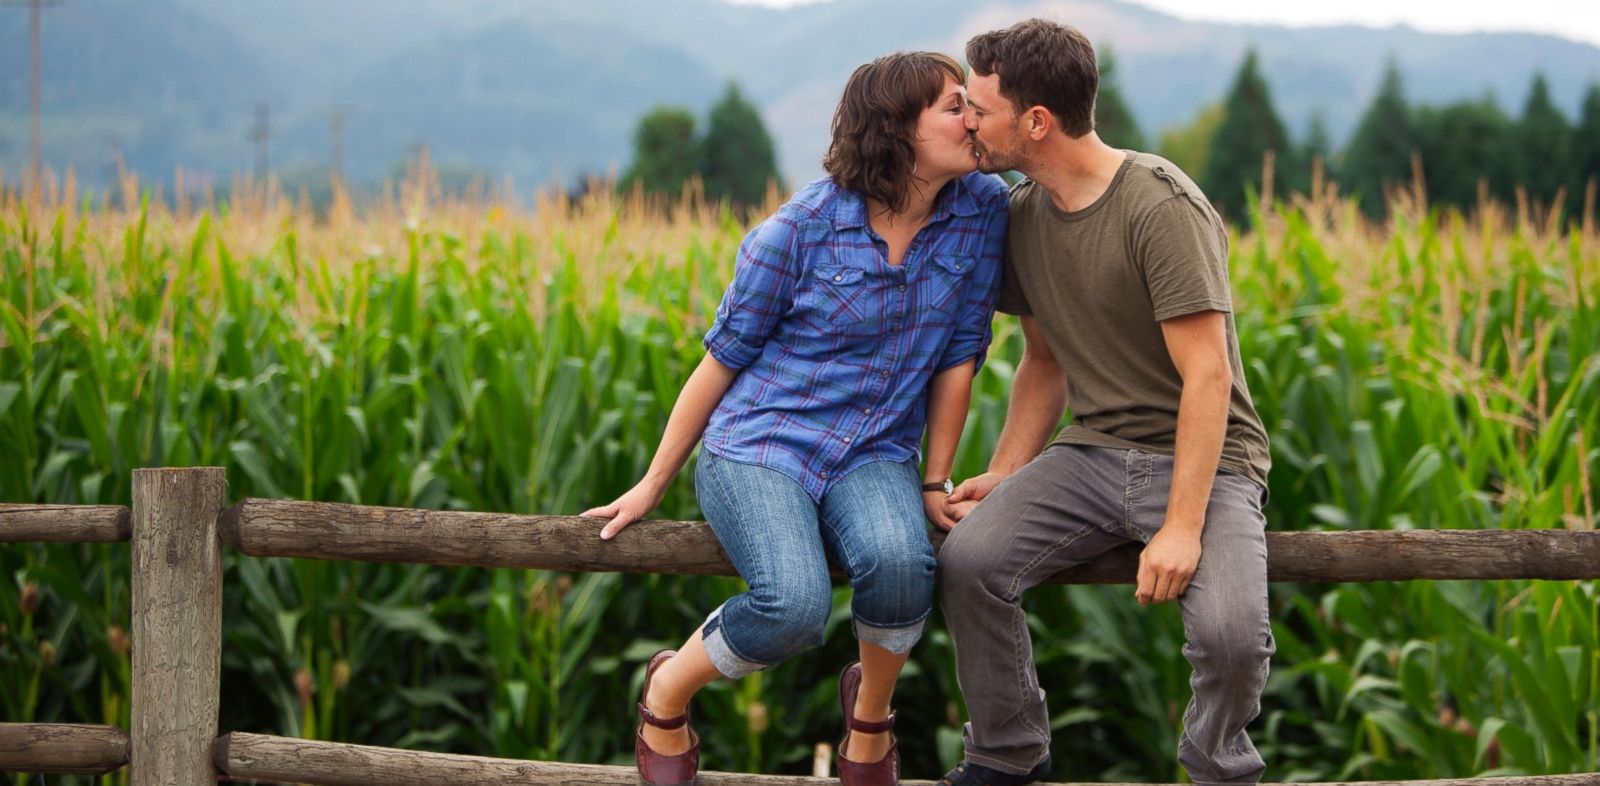 Free farmer dating sites